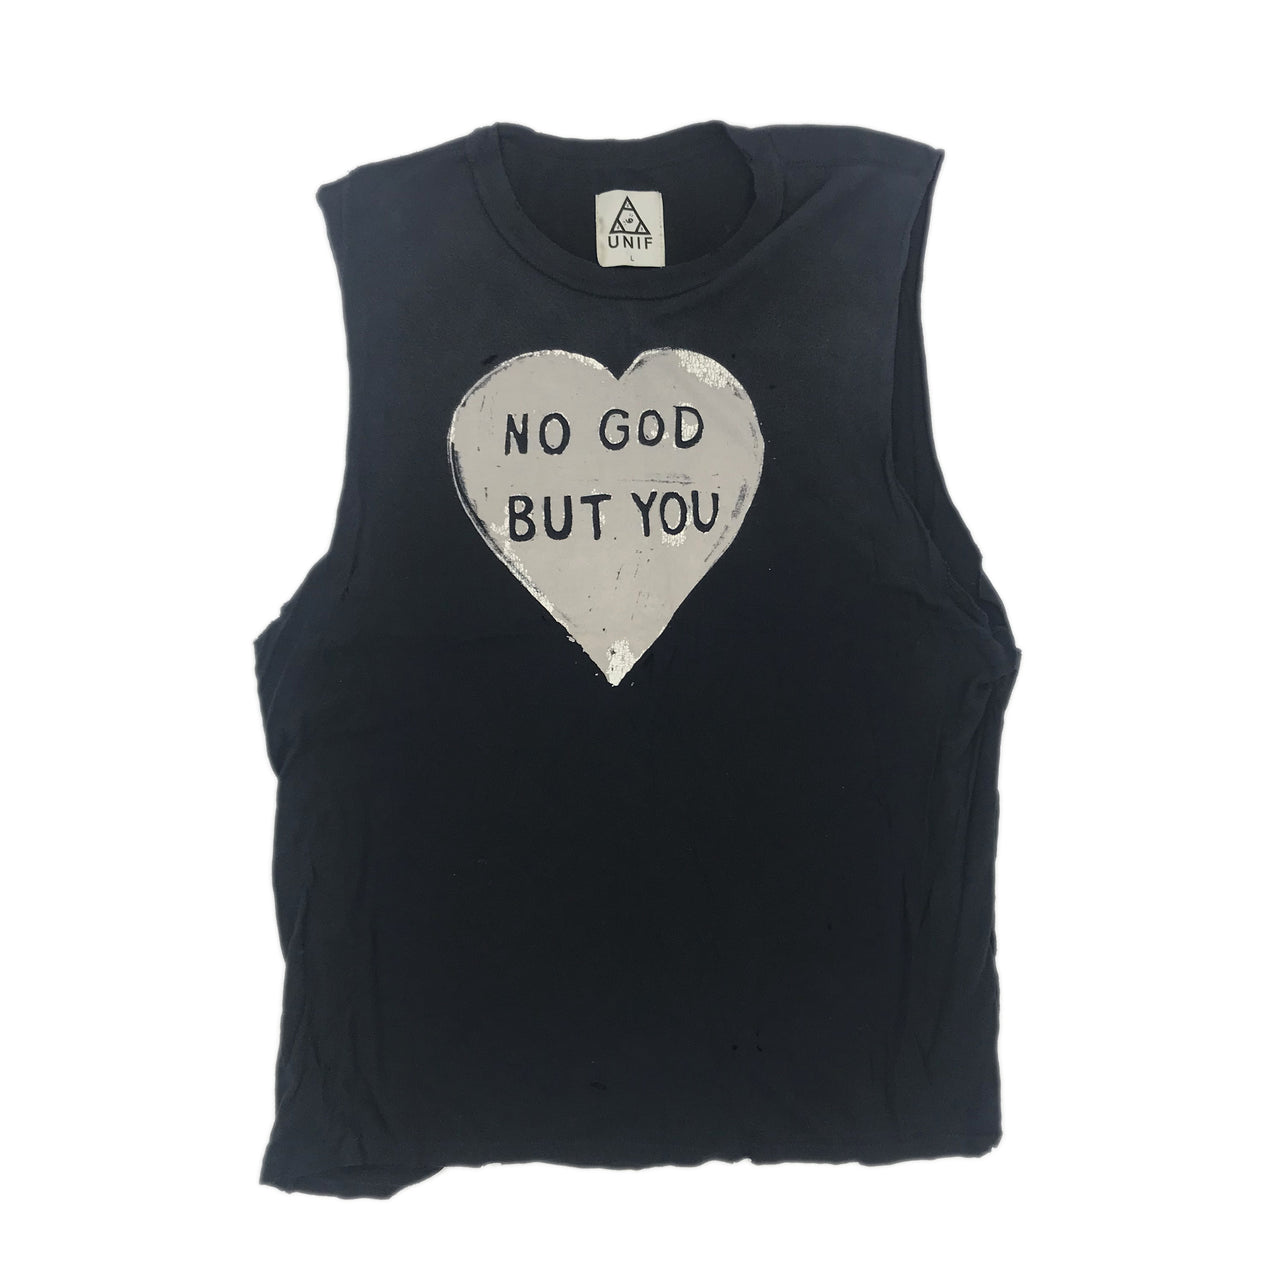 UNIF 'NO GOD BUT YOU' TANK